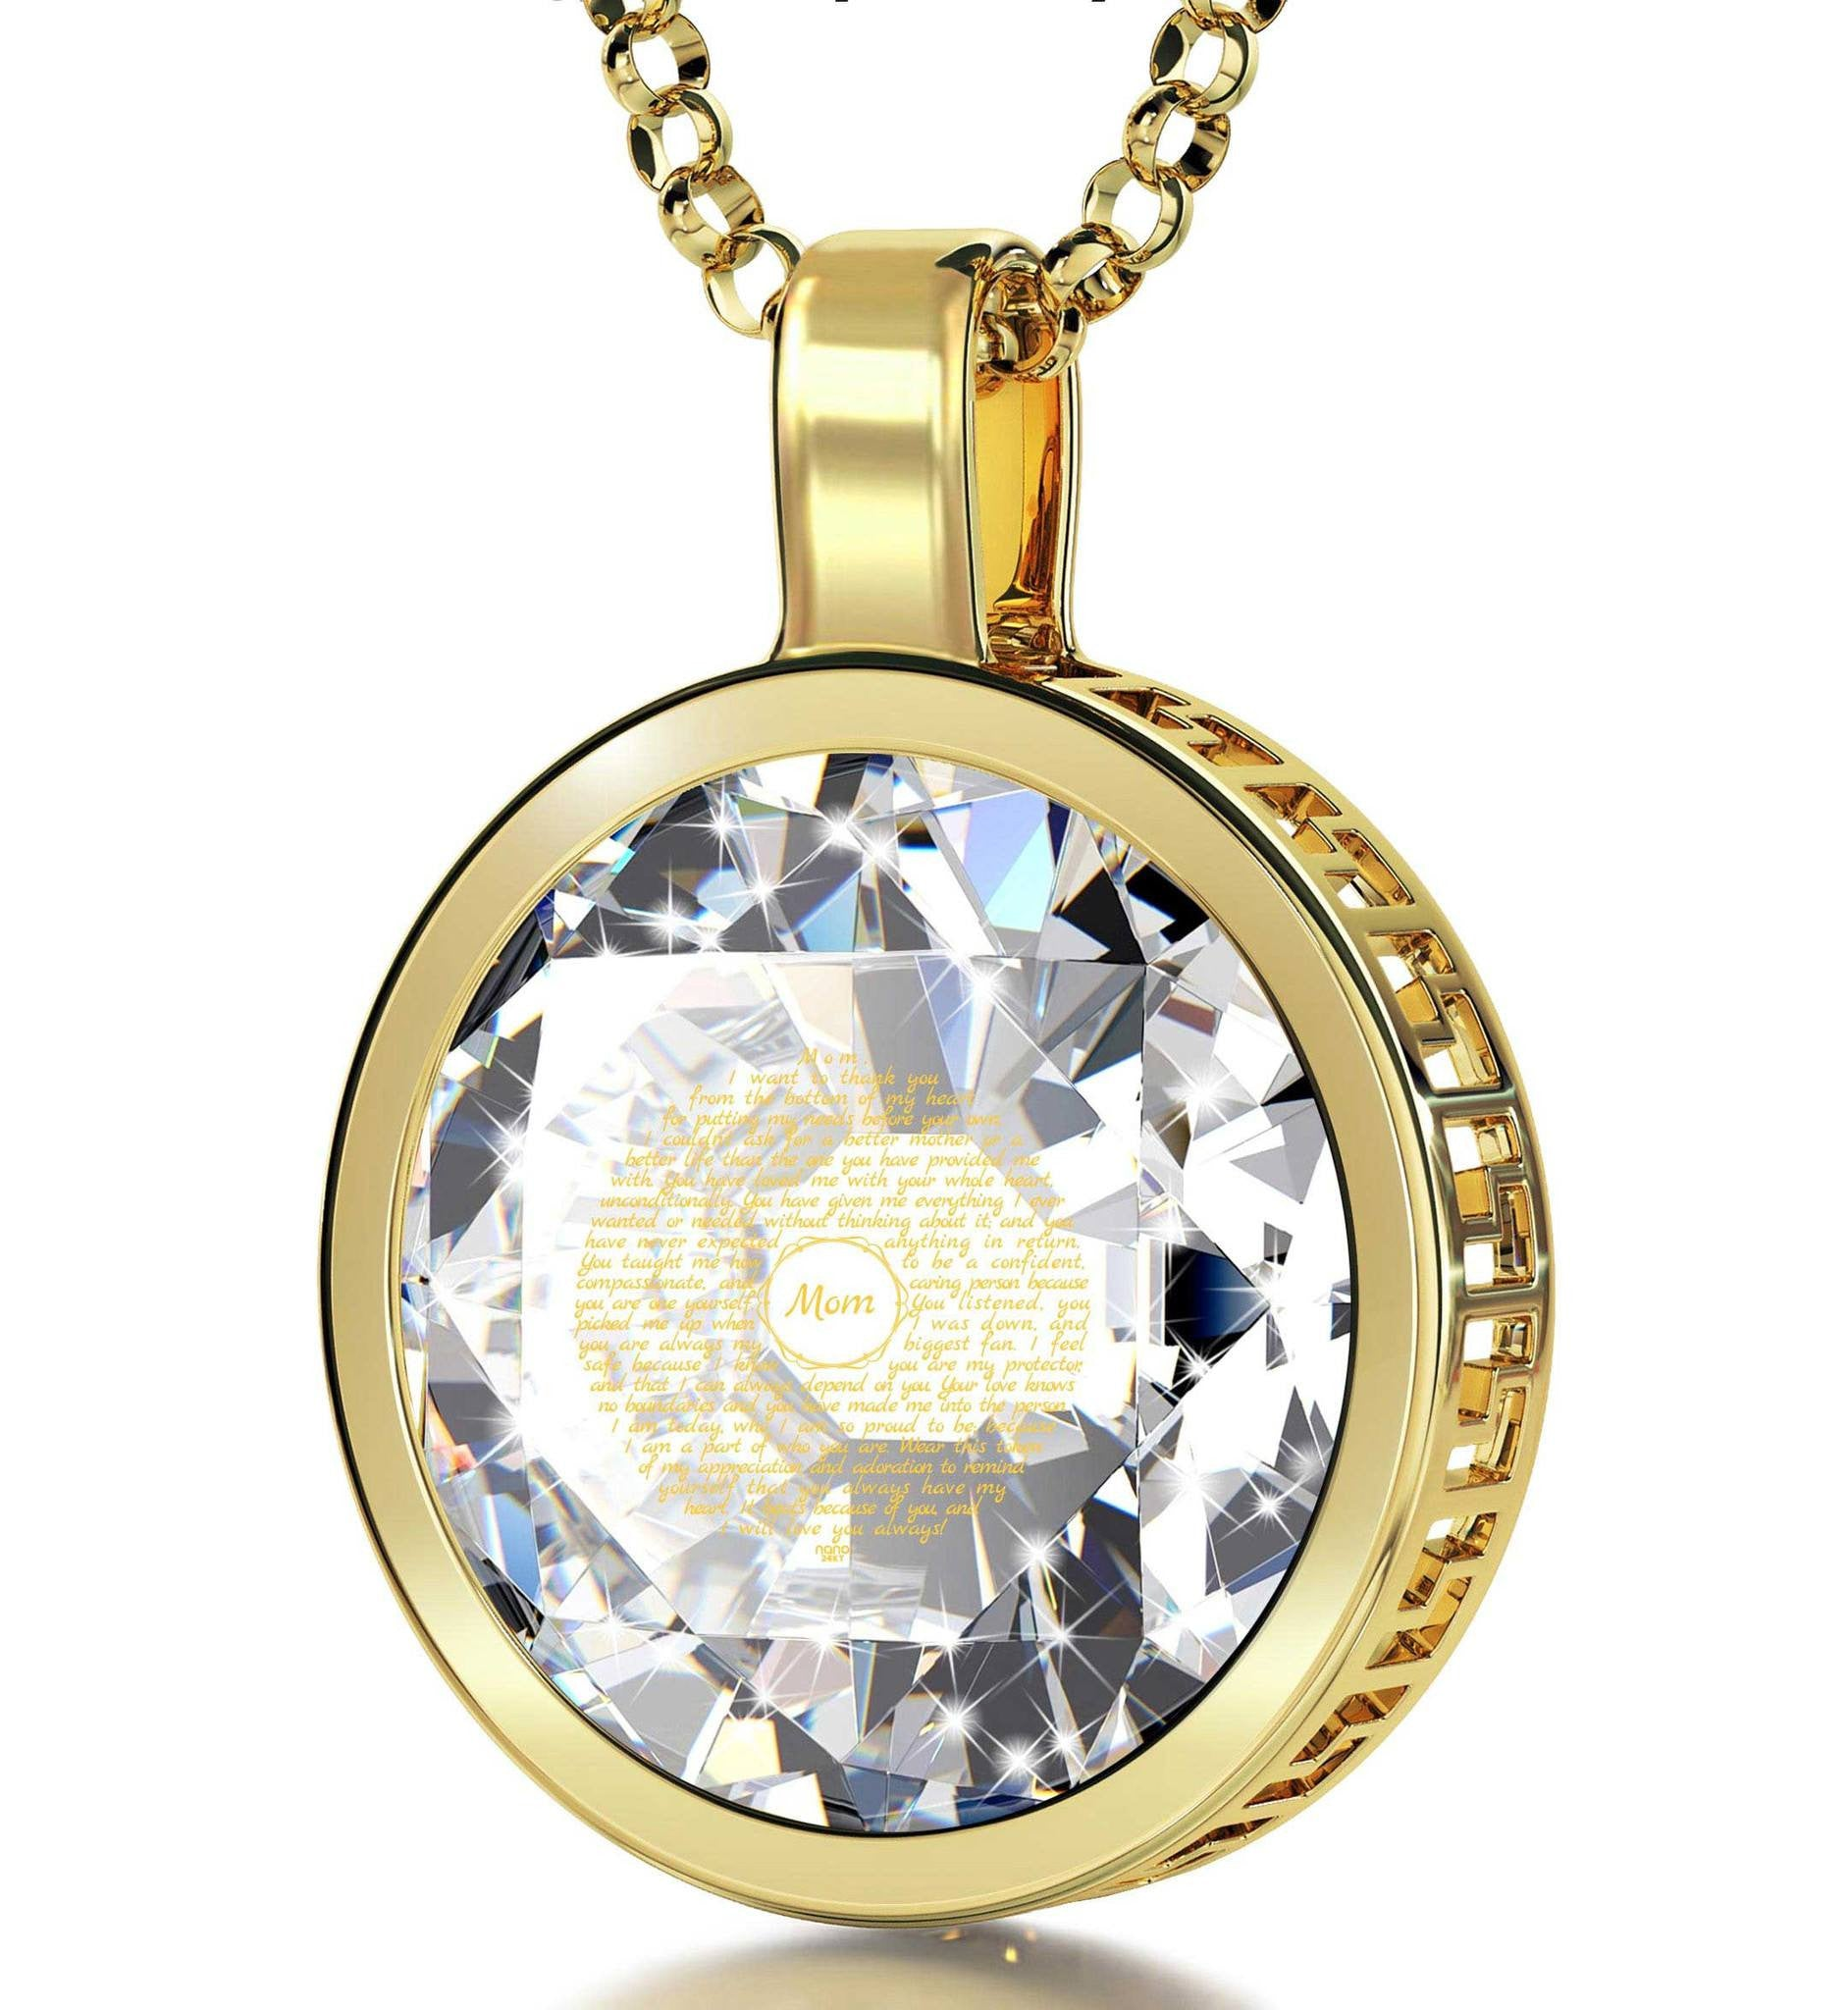 Special Mother's Day Gifts, 14kt Gold Engraved Jewelry, Valentines Gifts for Mom, by Nano